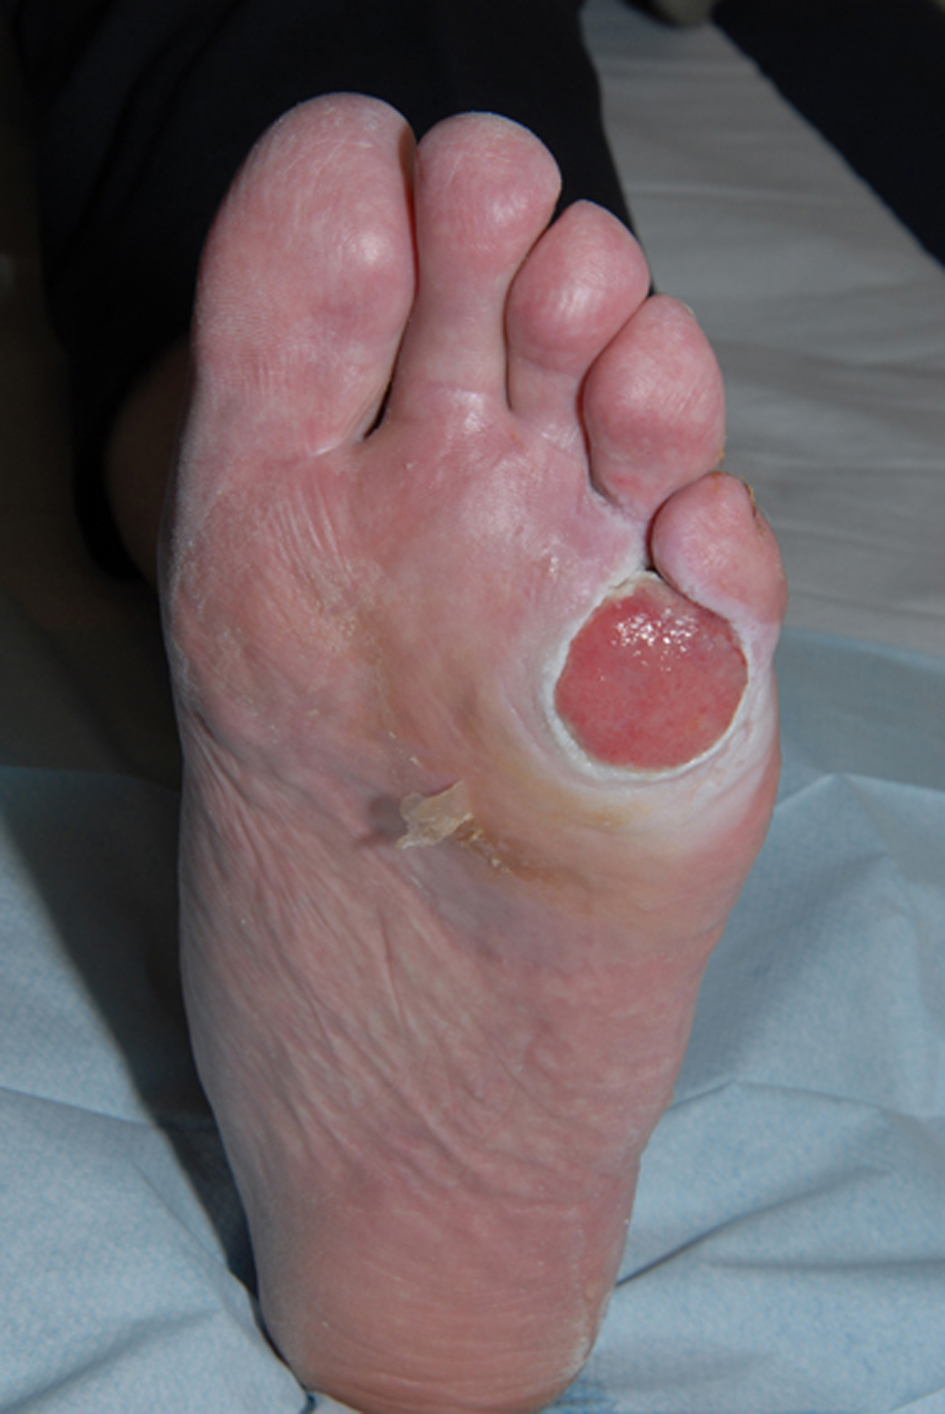 Amelanotic Melanoma Presenting As A Neuropathic Ulcer In A